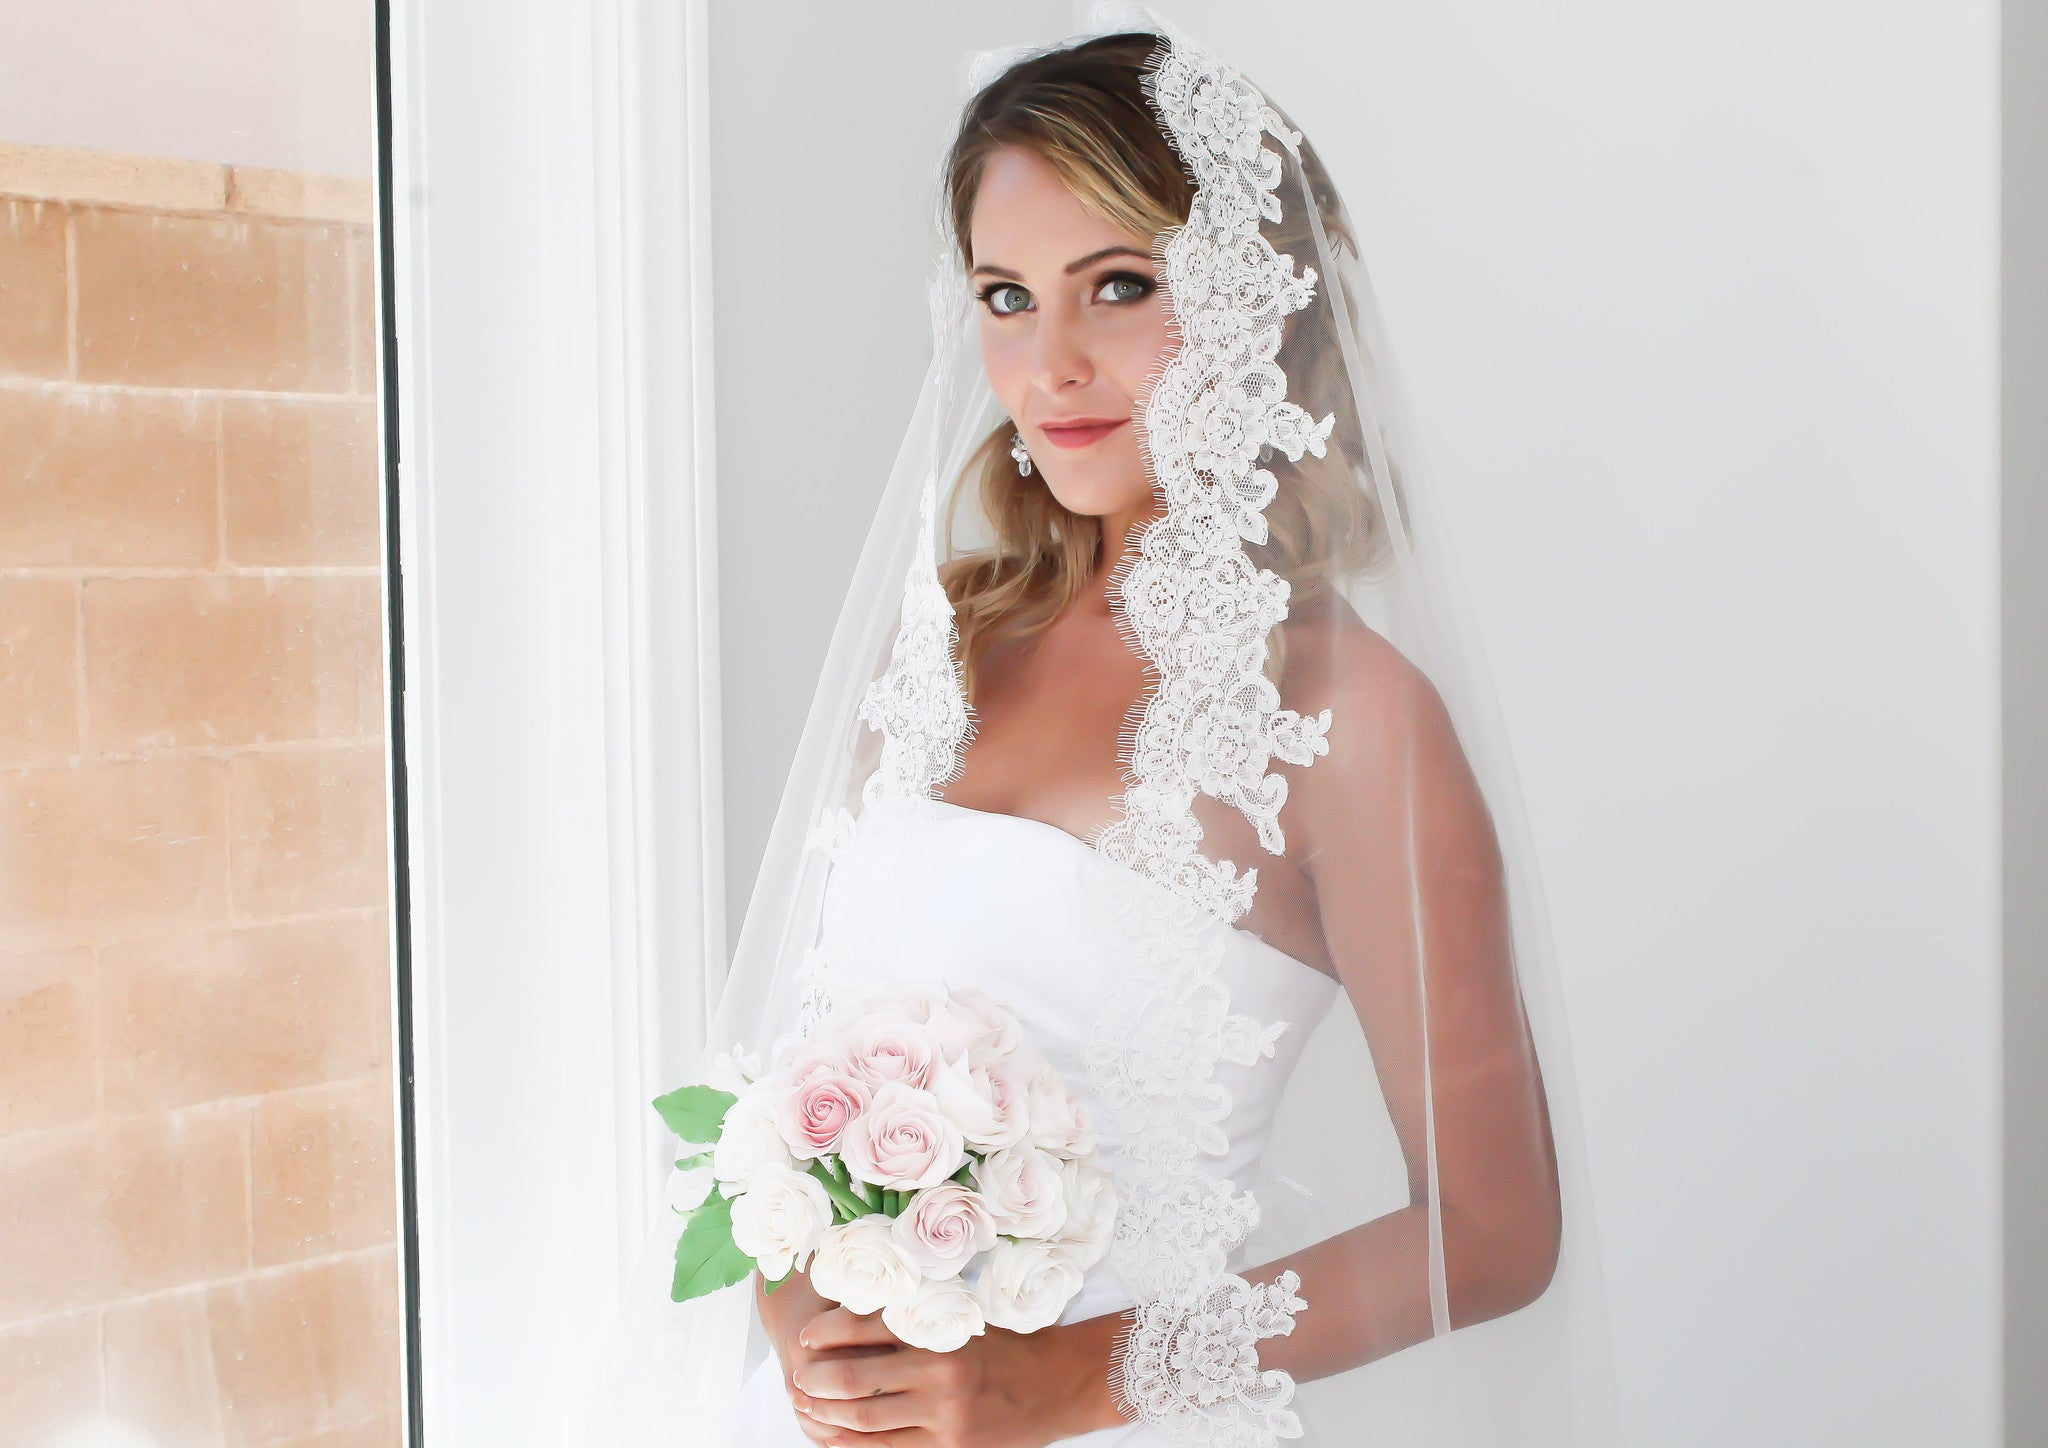 Wedding Veil Handmade with Beautiful Bridal Illusion Tulle and Lace - Bride Glamor